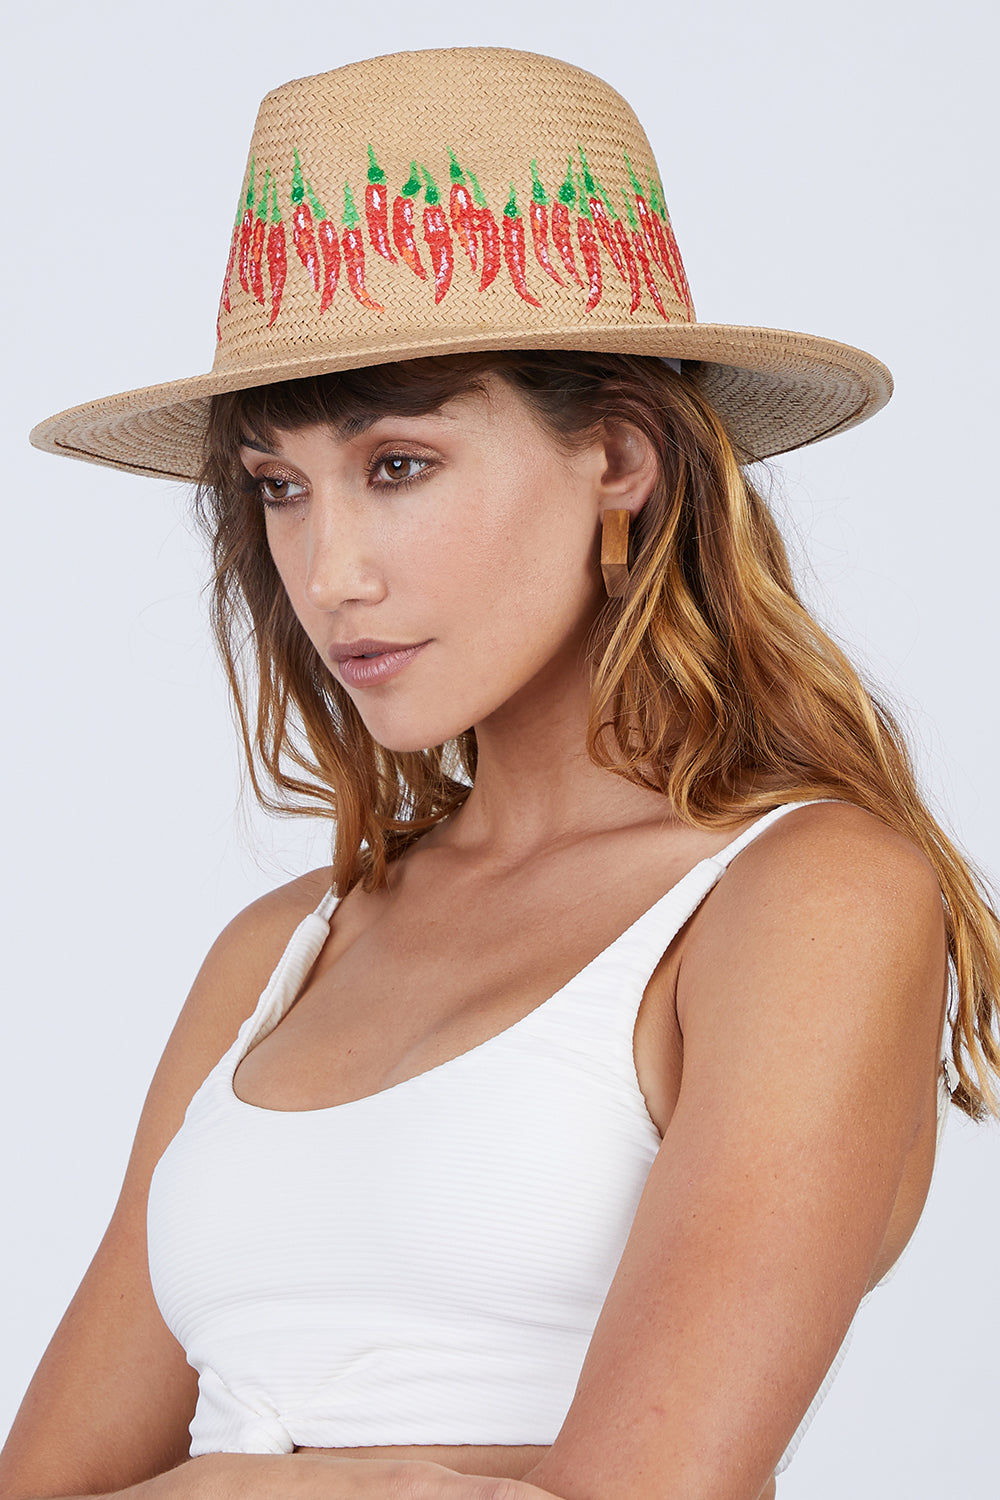 Rosa Panama Hat - Red Hot Chili Peppers